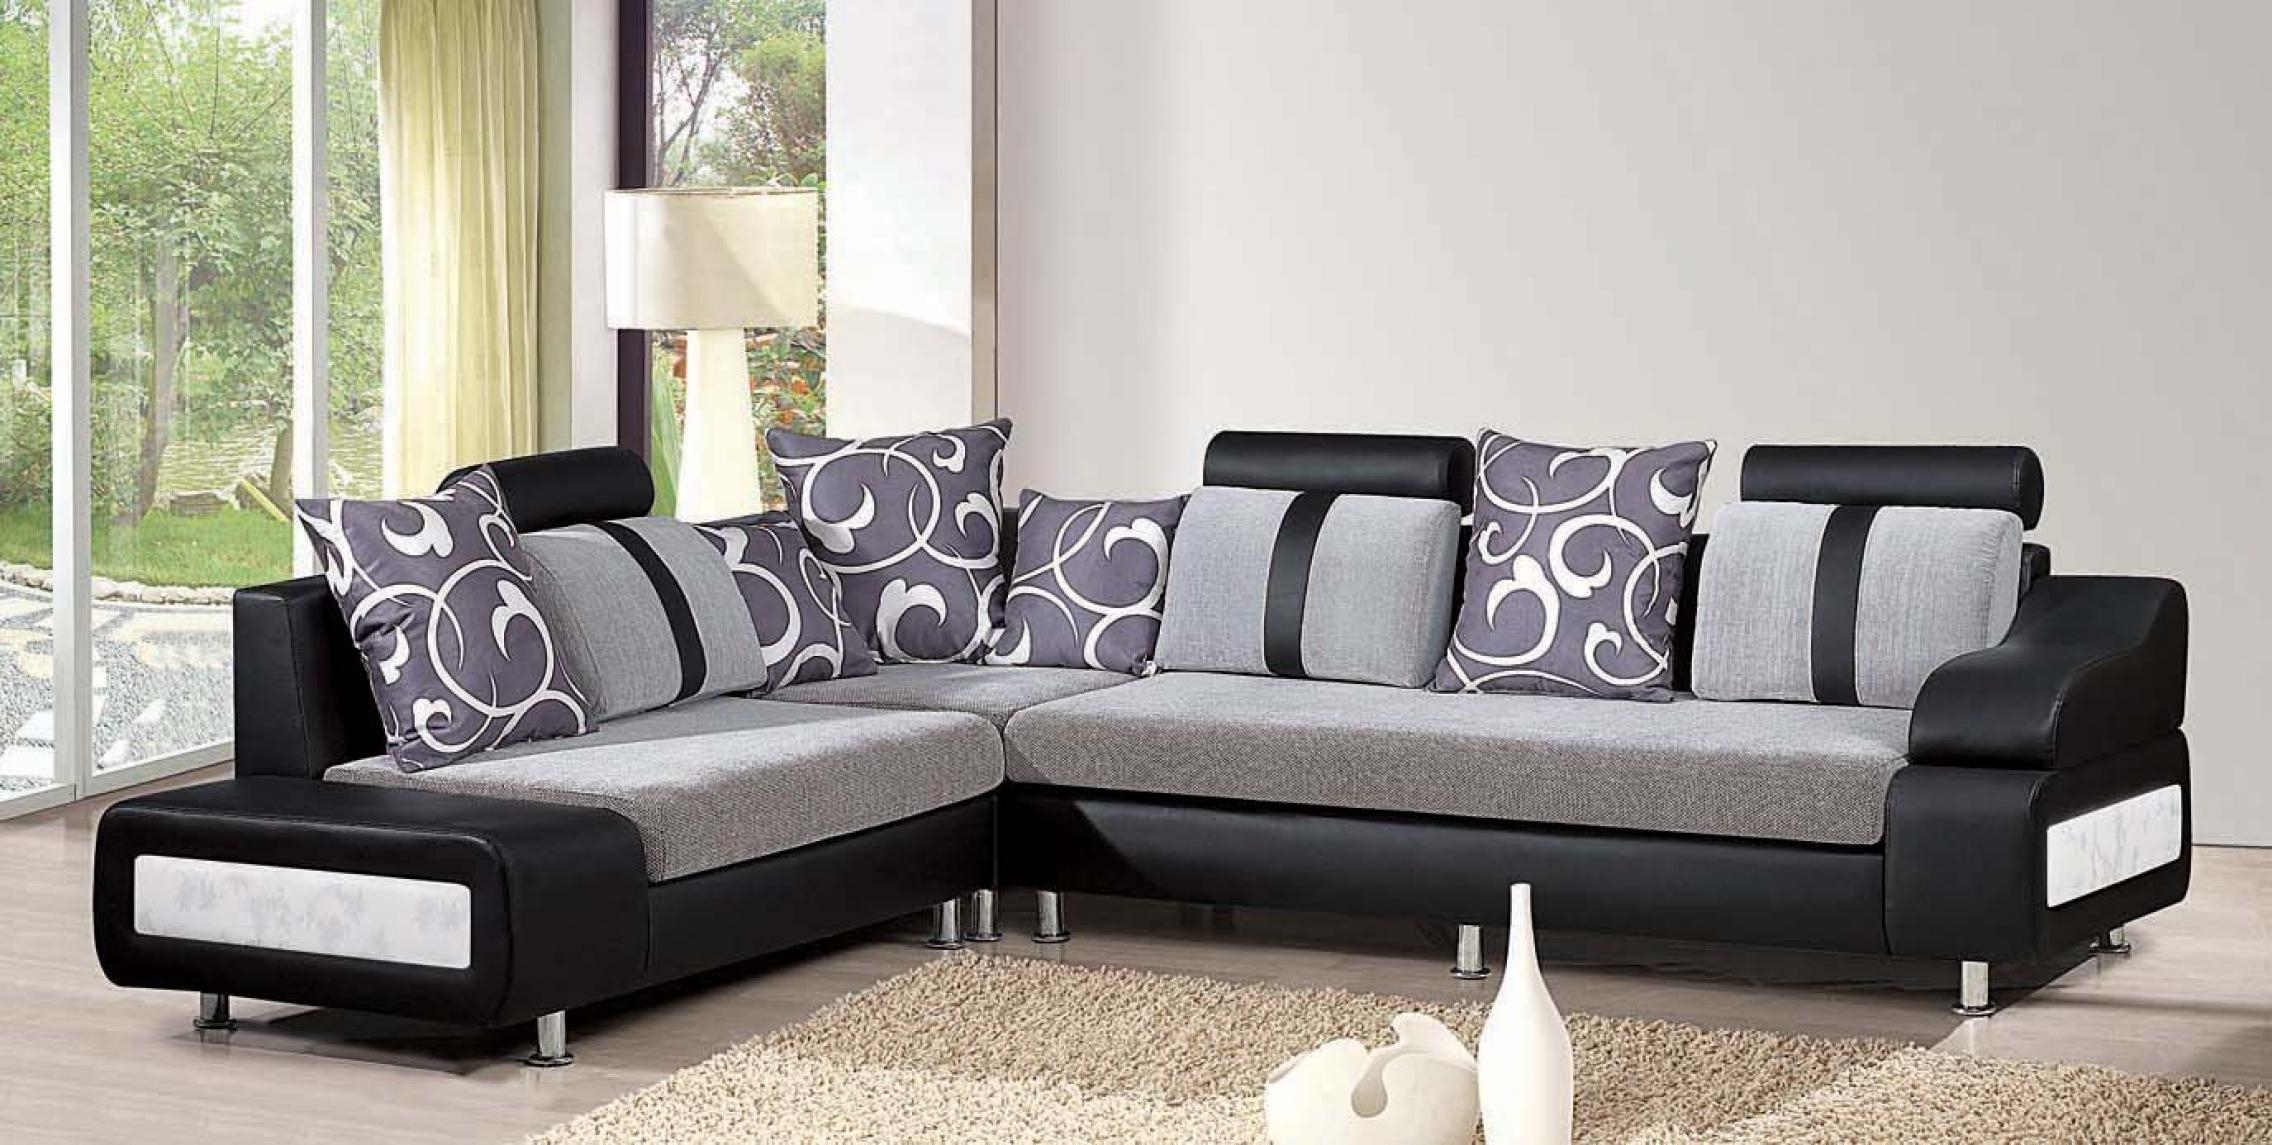 sofa set companies in india white leather sofas for sale 2018 latest chairs living room ideas